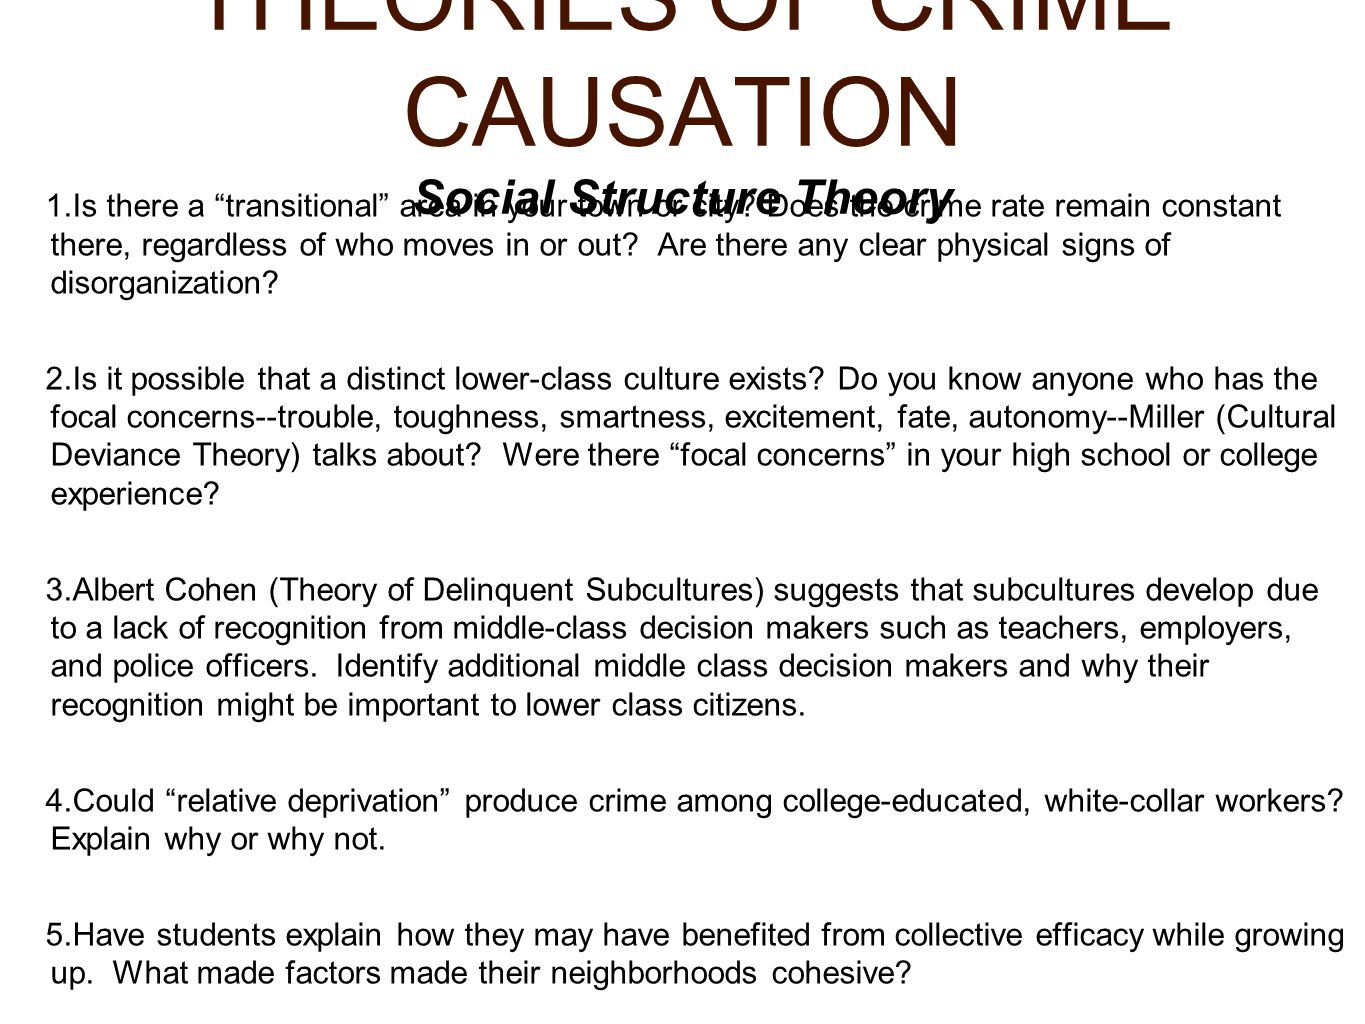 could relative deprivation produce crime among college educated white collar workers Material deprivation or minimal education social upper white-collar the burden of proof rests among proponents of the relative deprivation.